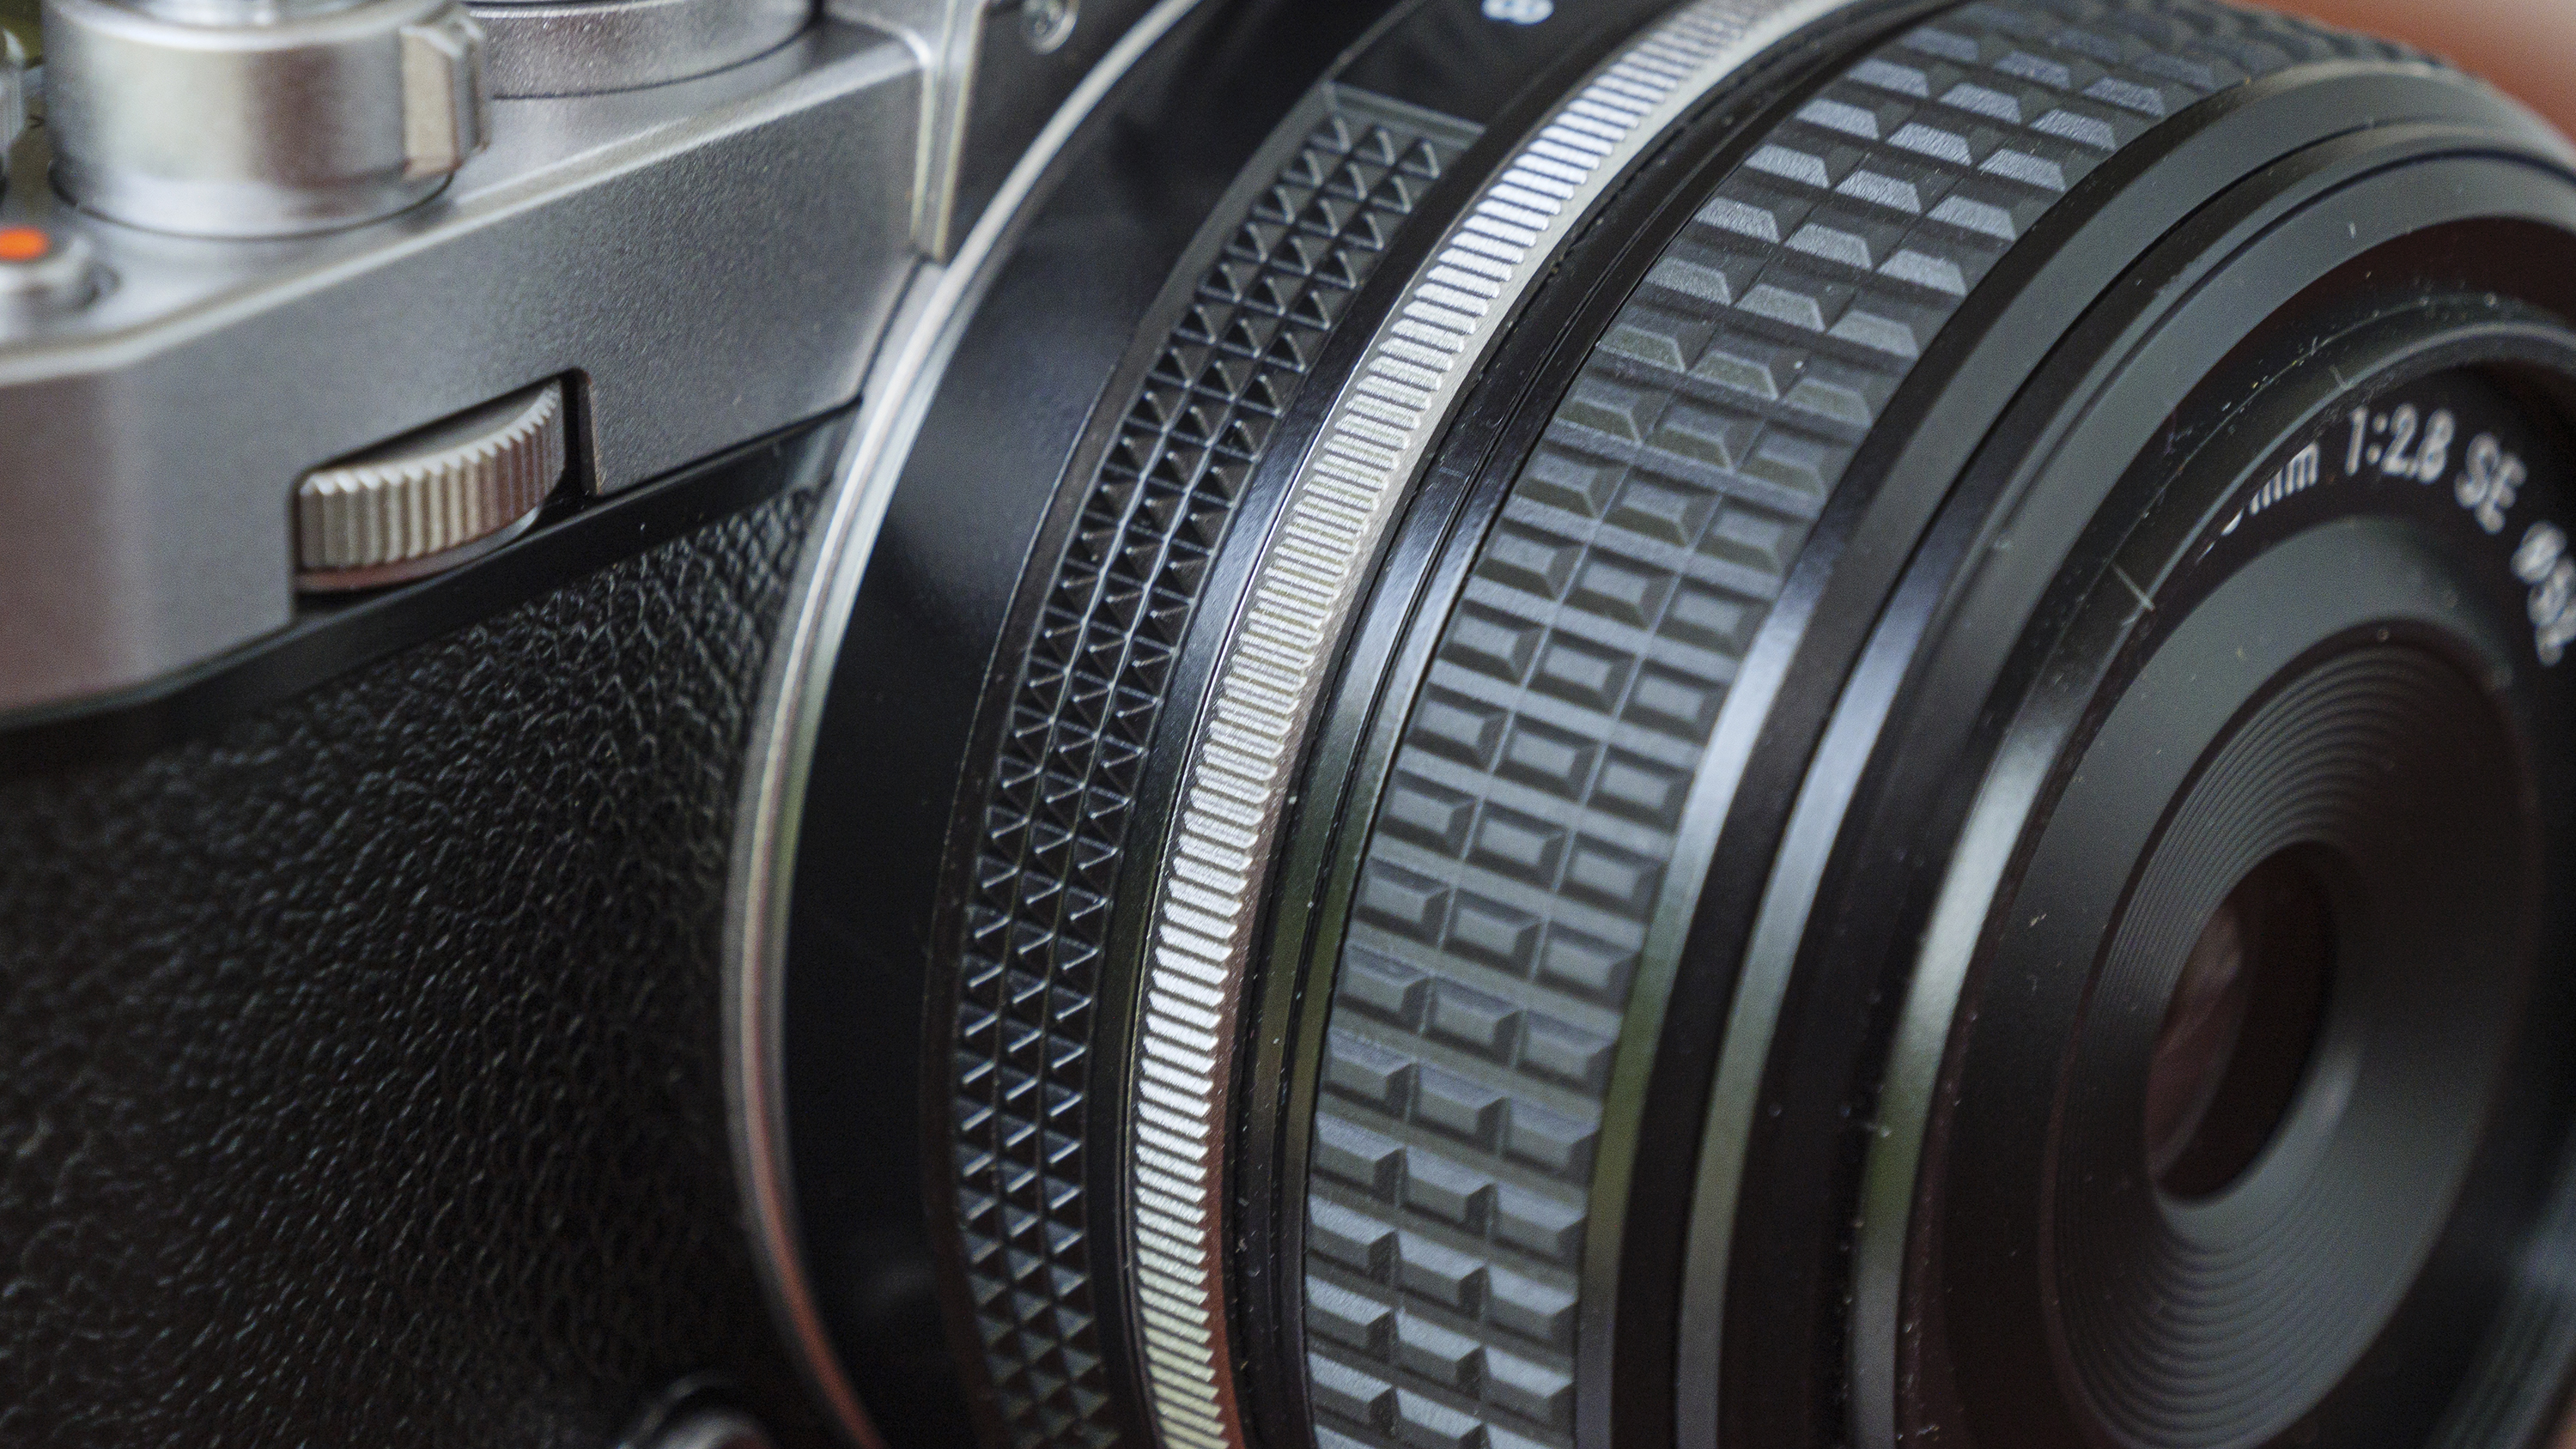 A close-up of a lens on the Nikon Zfc camera